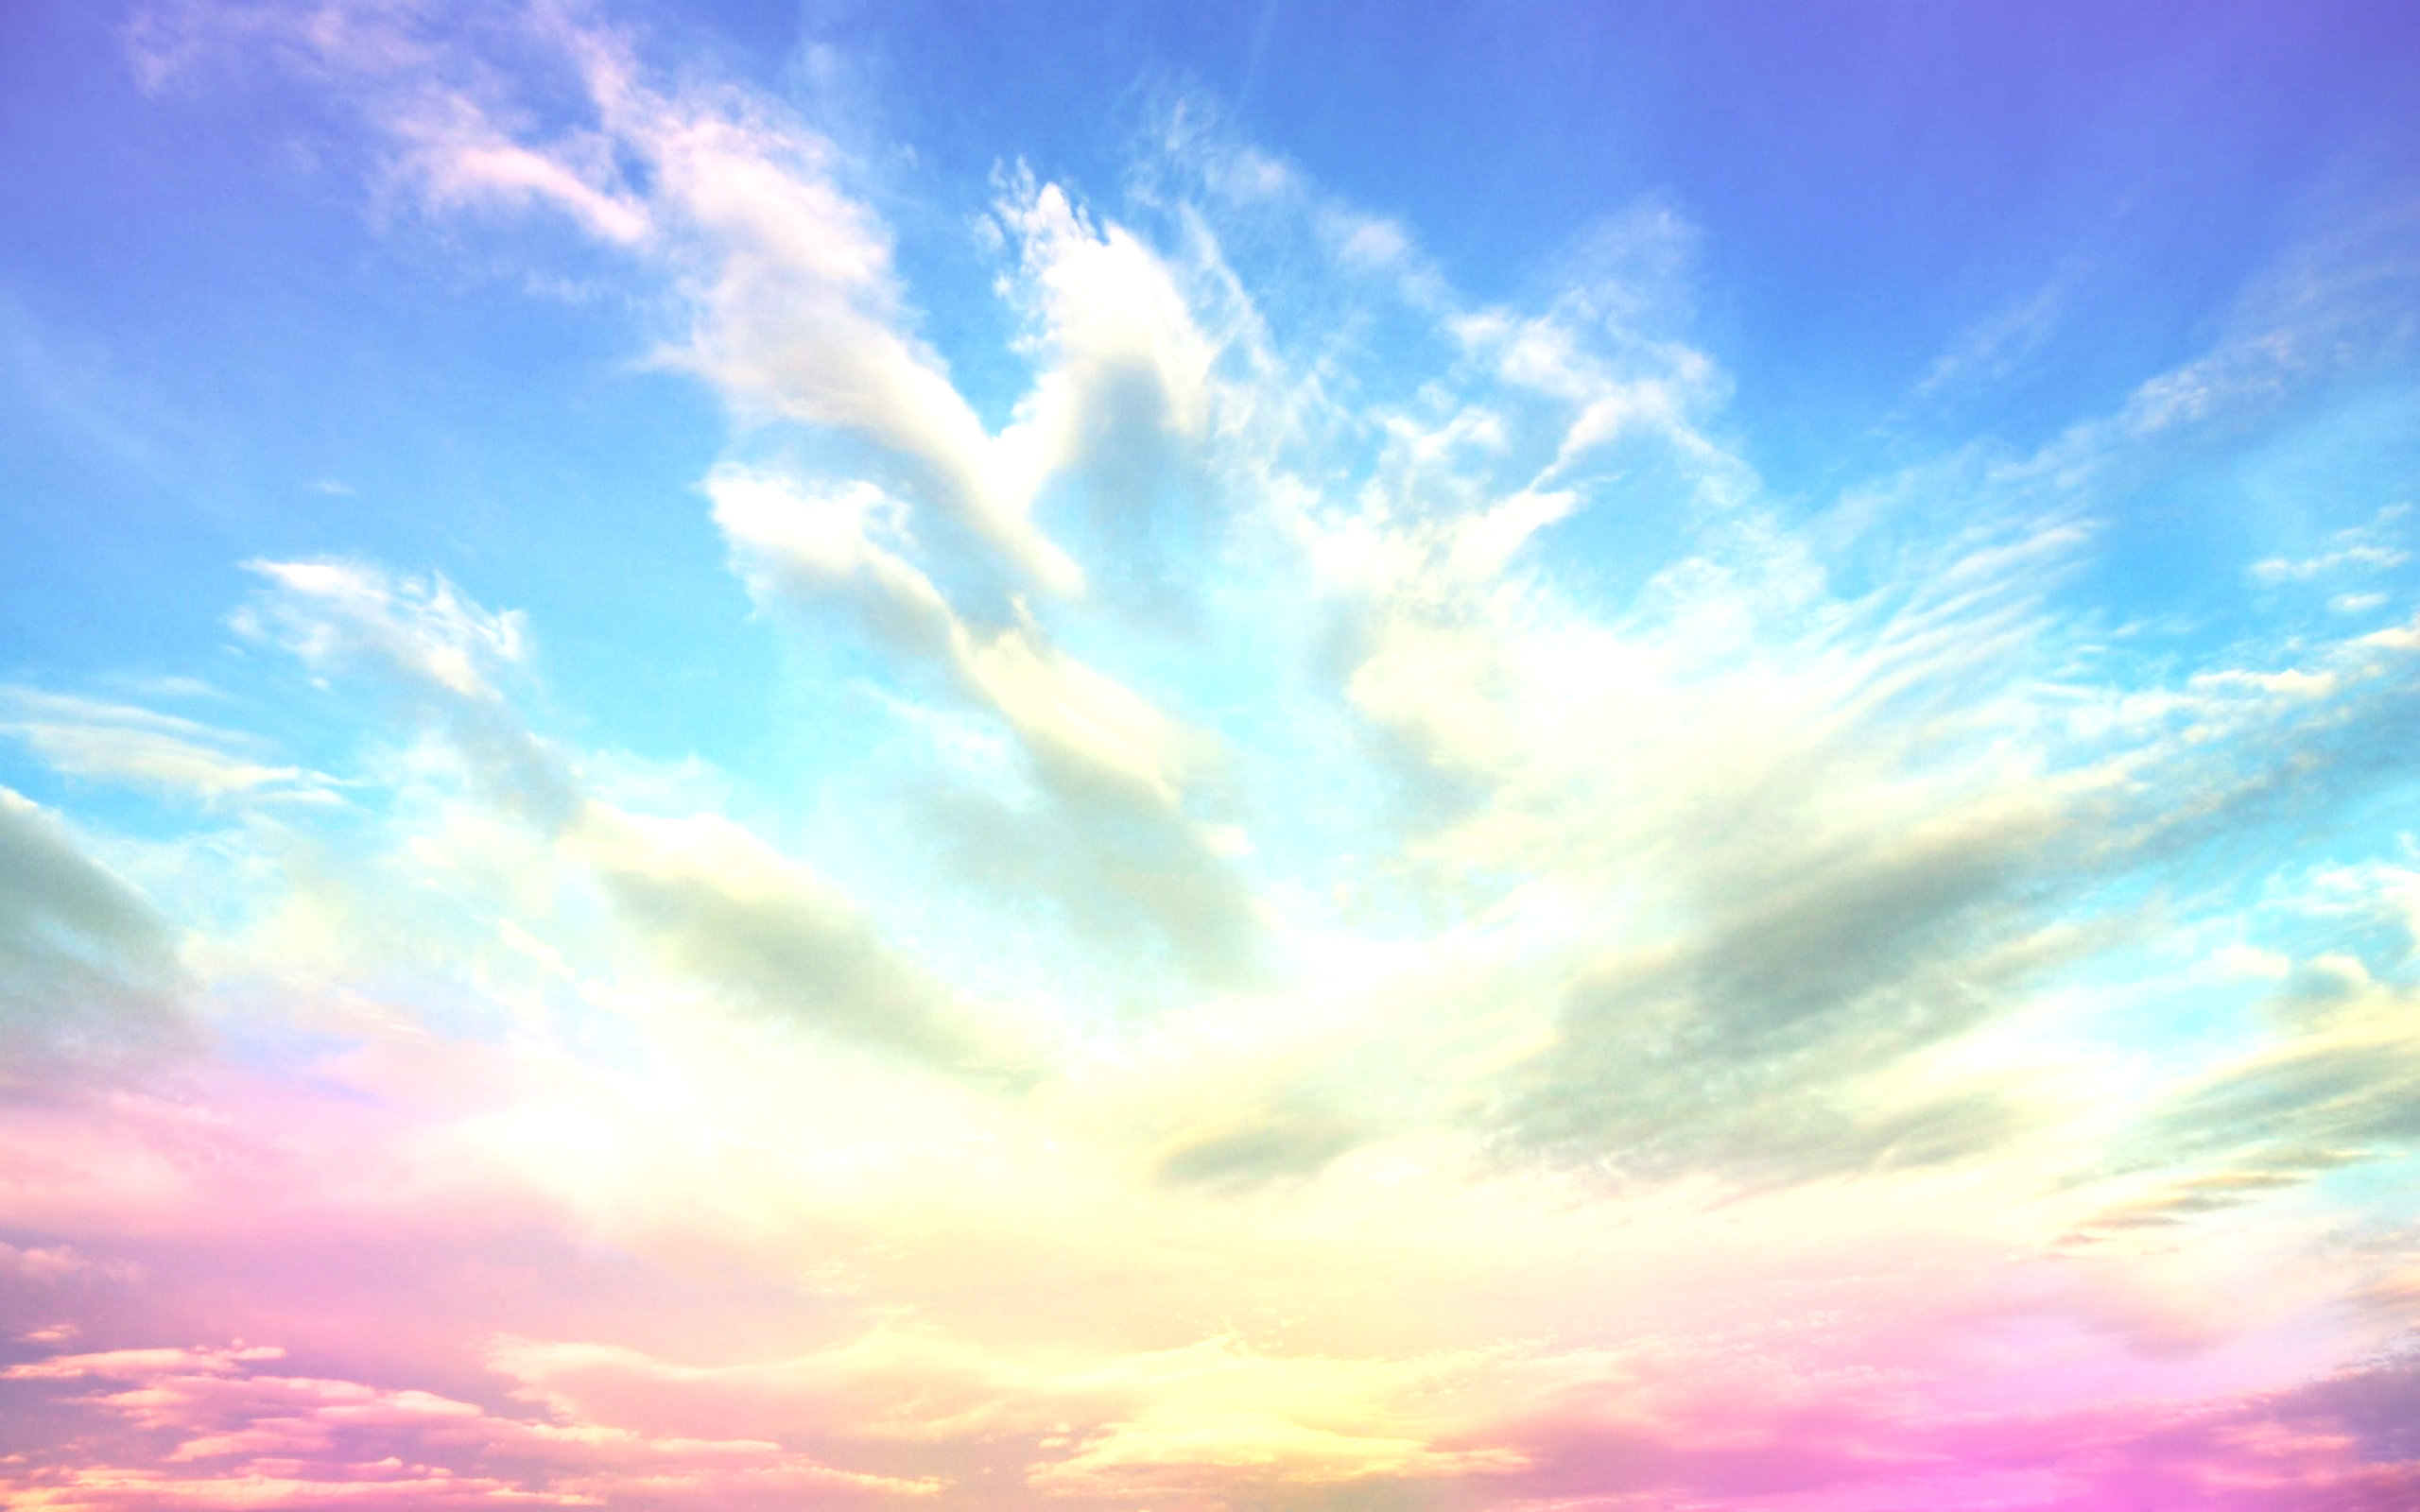 http://static.tumblr.com/b29408a58fa6b6ffeda75a5e1911741c/iv20pmz/sSAmws353/tumblr_static_colorful-sky-wallpaper_40201.jpg